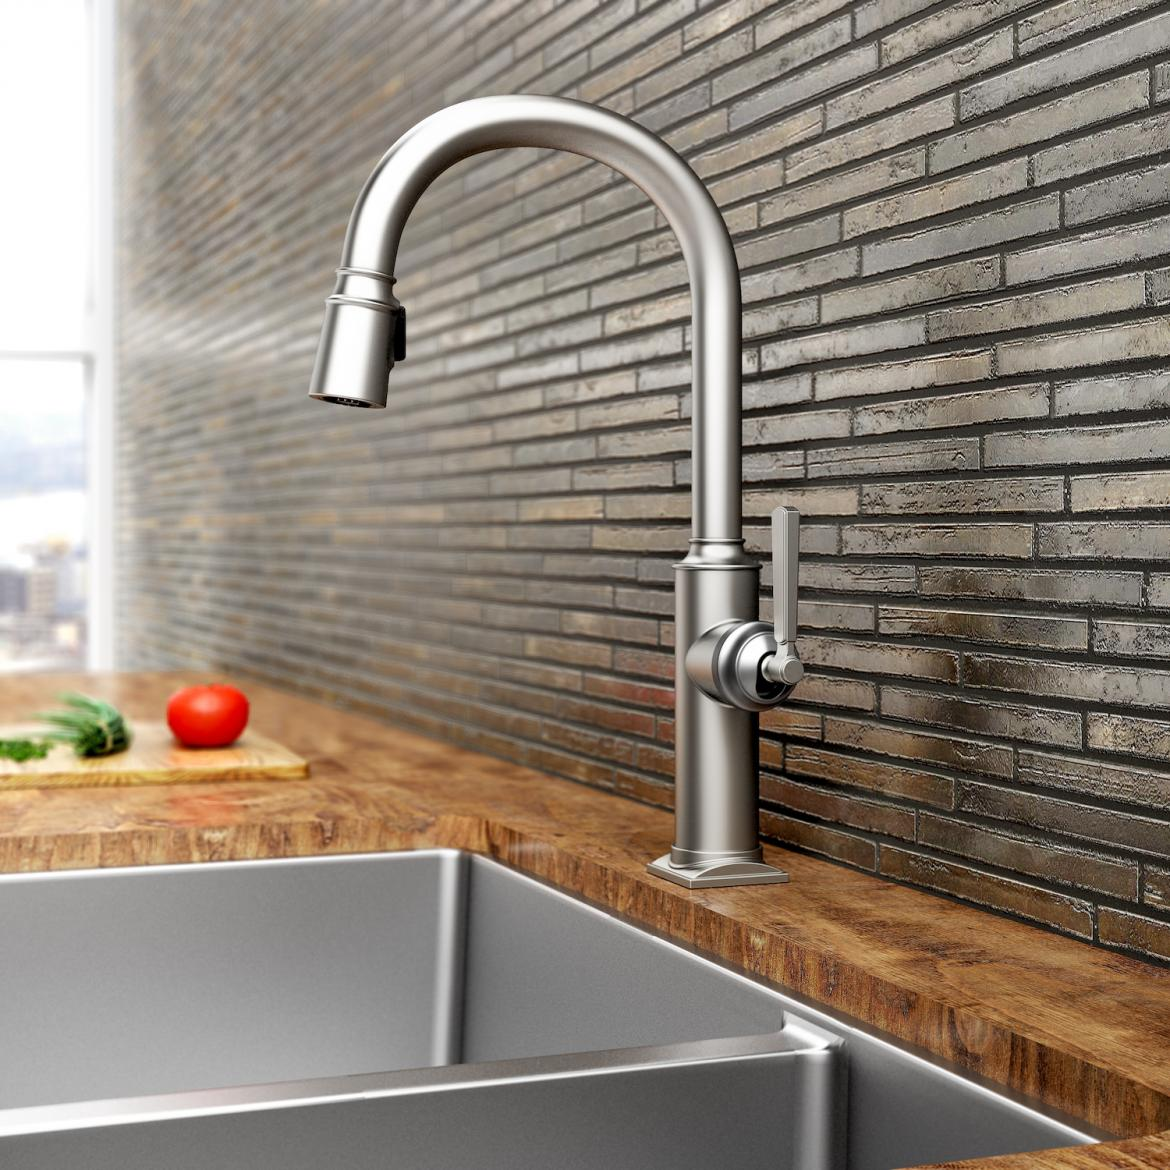 Newport Brass Kitchen Faucet| PRODUCTS